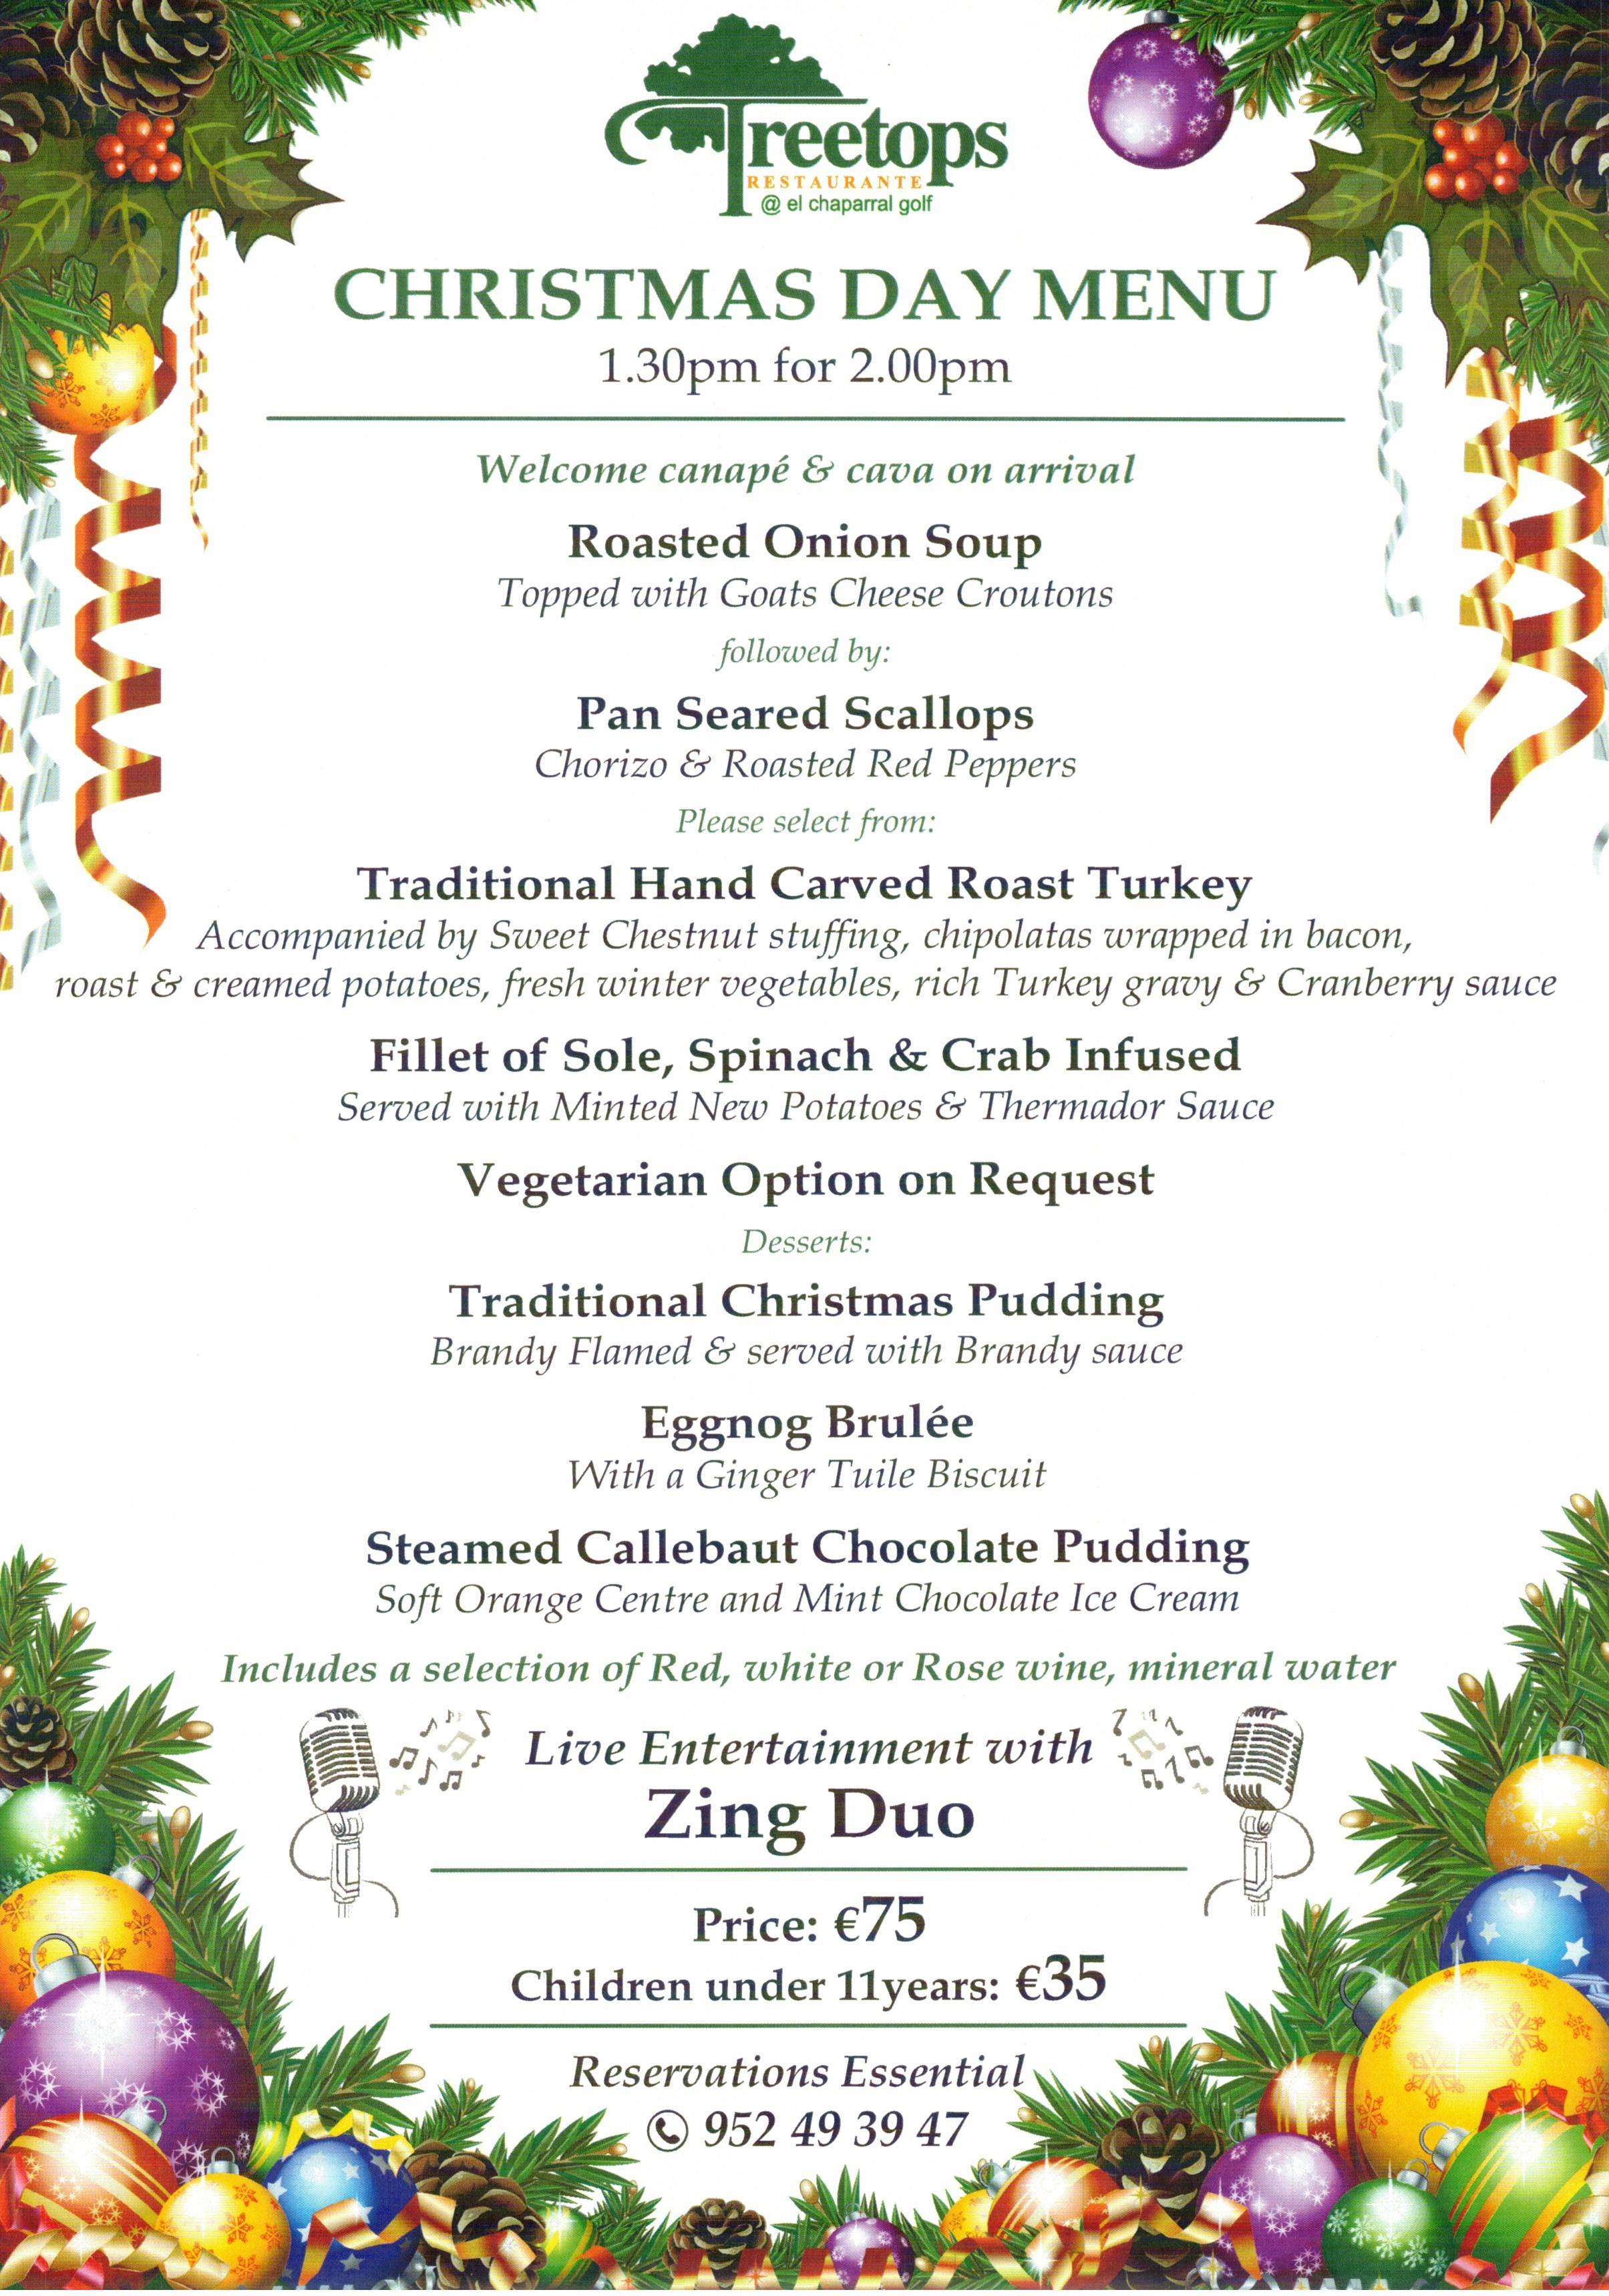 CHRISTMAS DAY MENU 2018, CHAPARRAL GOLF CLUB, MIJAS, COSTA DEL SOL